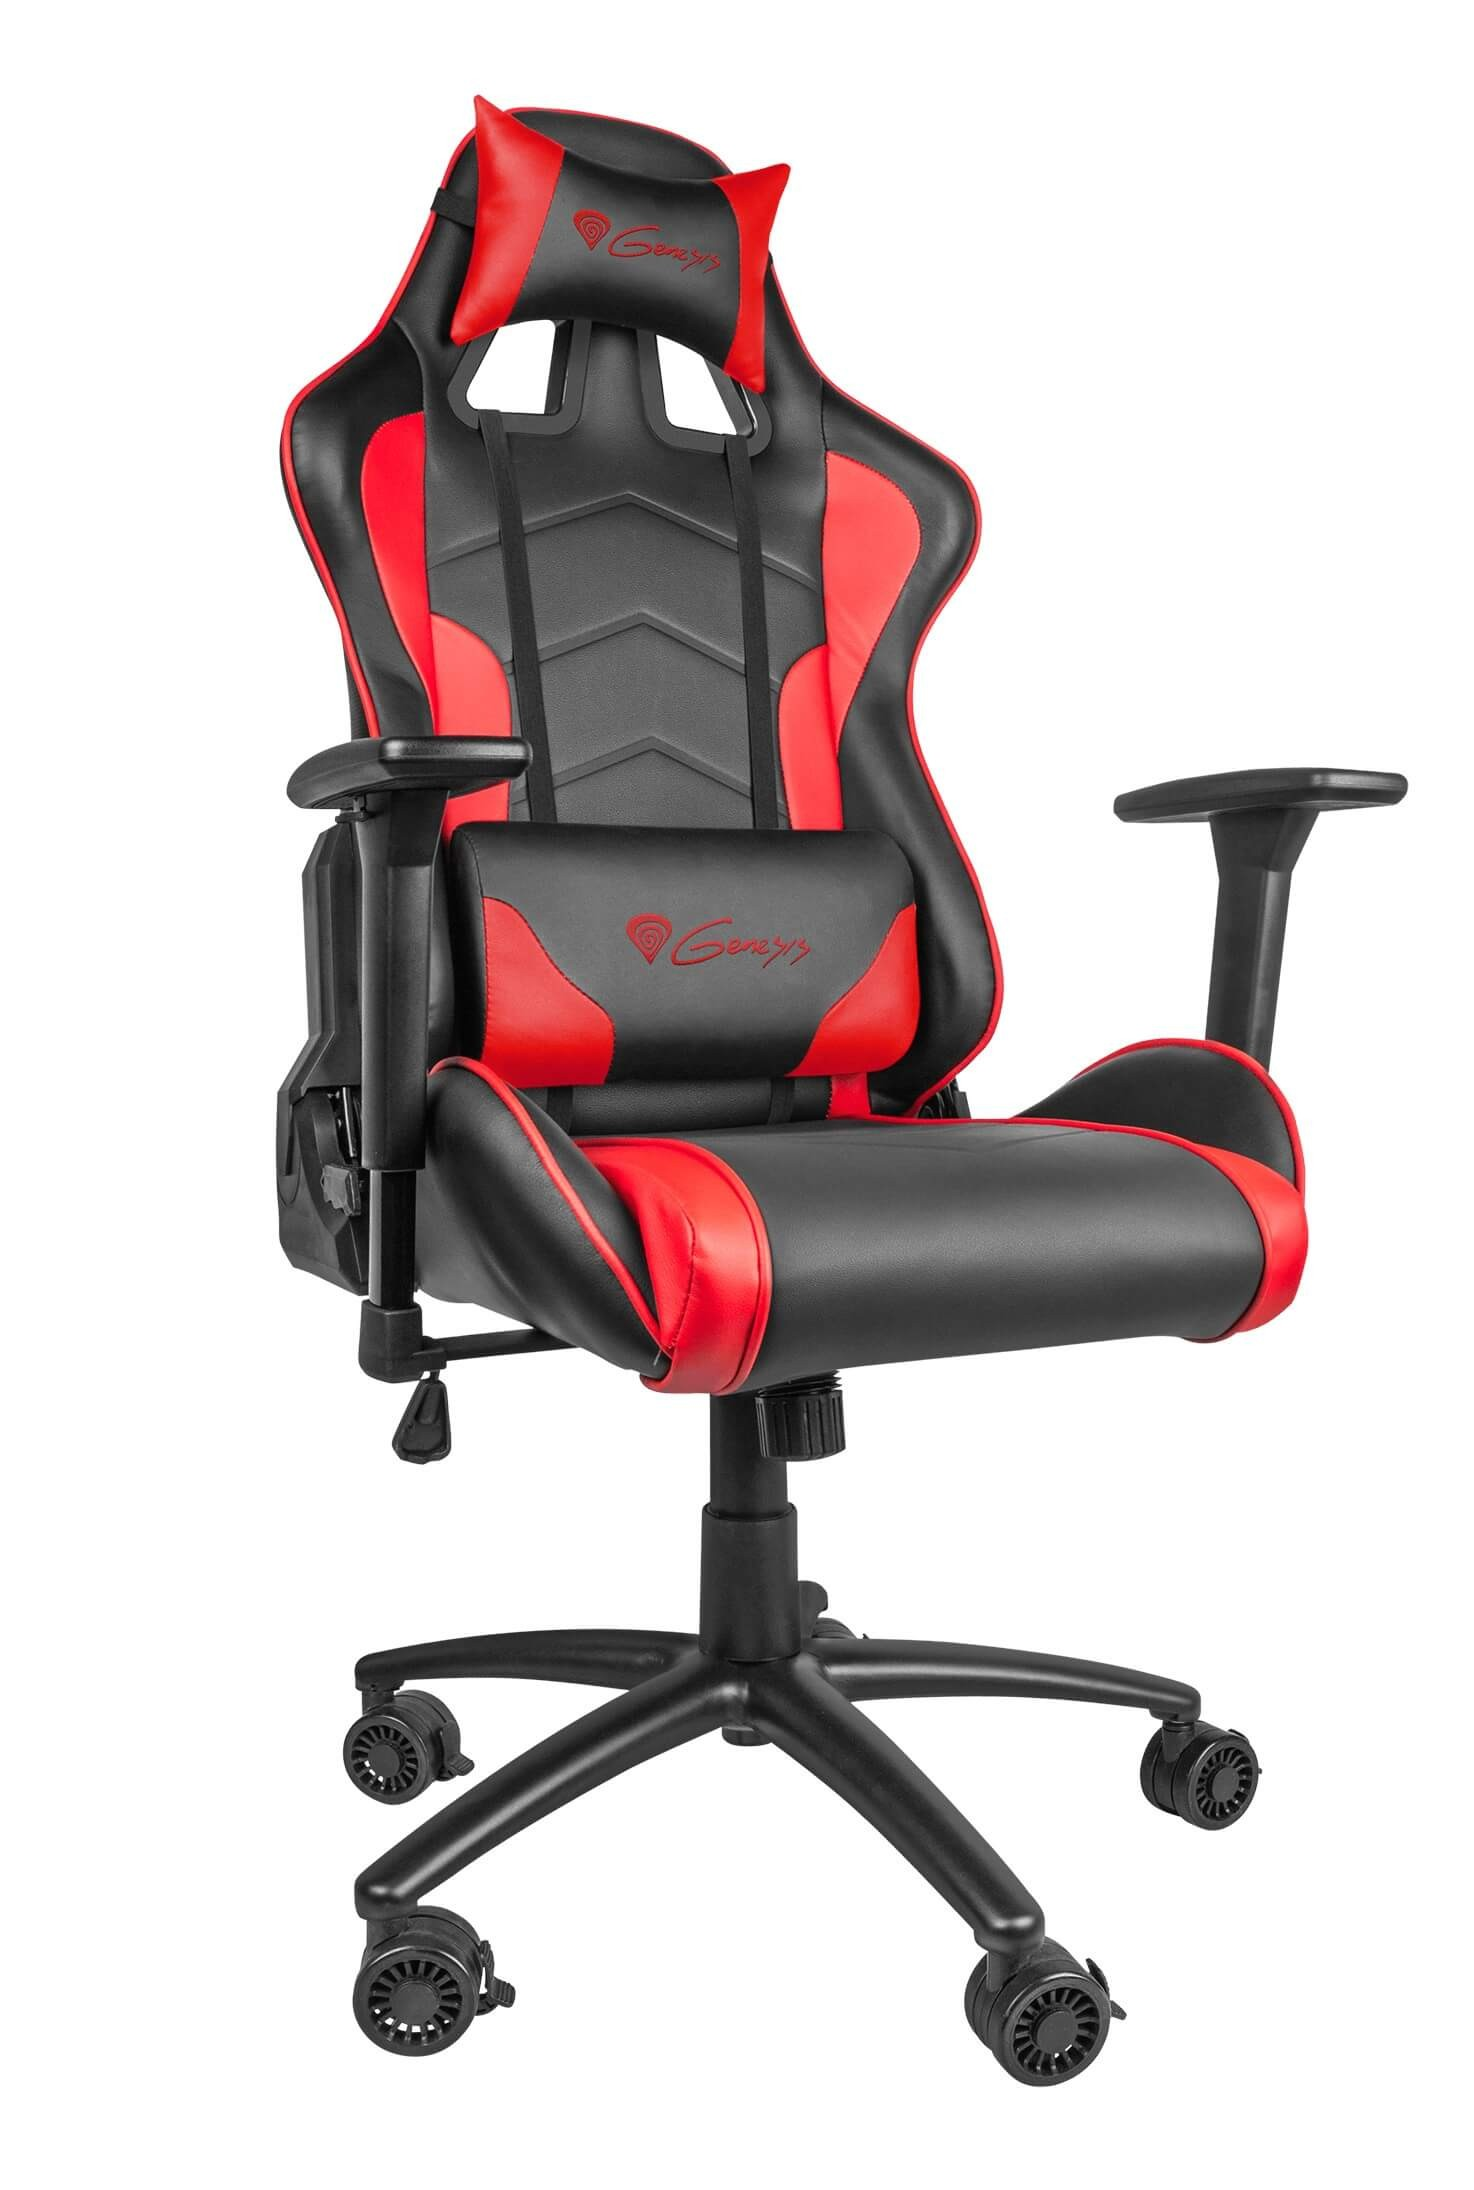 GAMING CHAIR GENESIS NITRO 880 BLACK RED